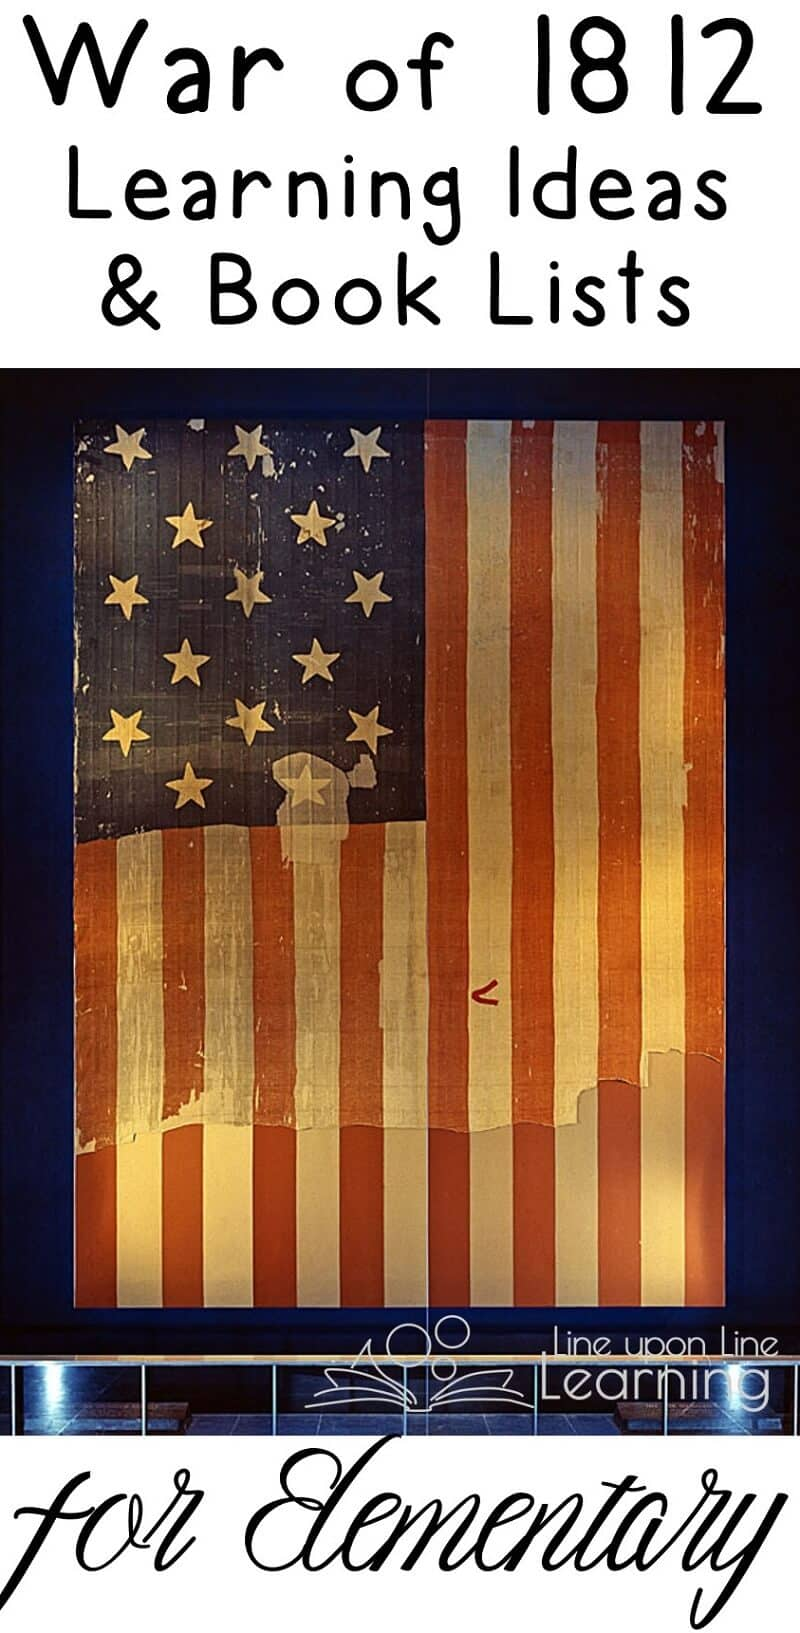 War Of 1812 Star Spangled Banner